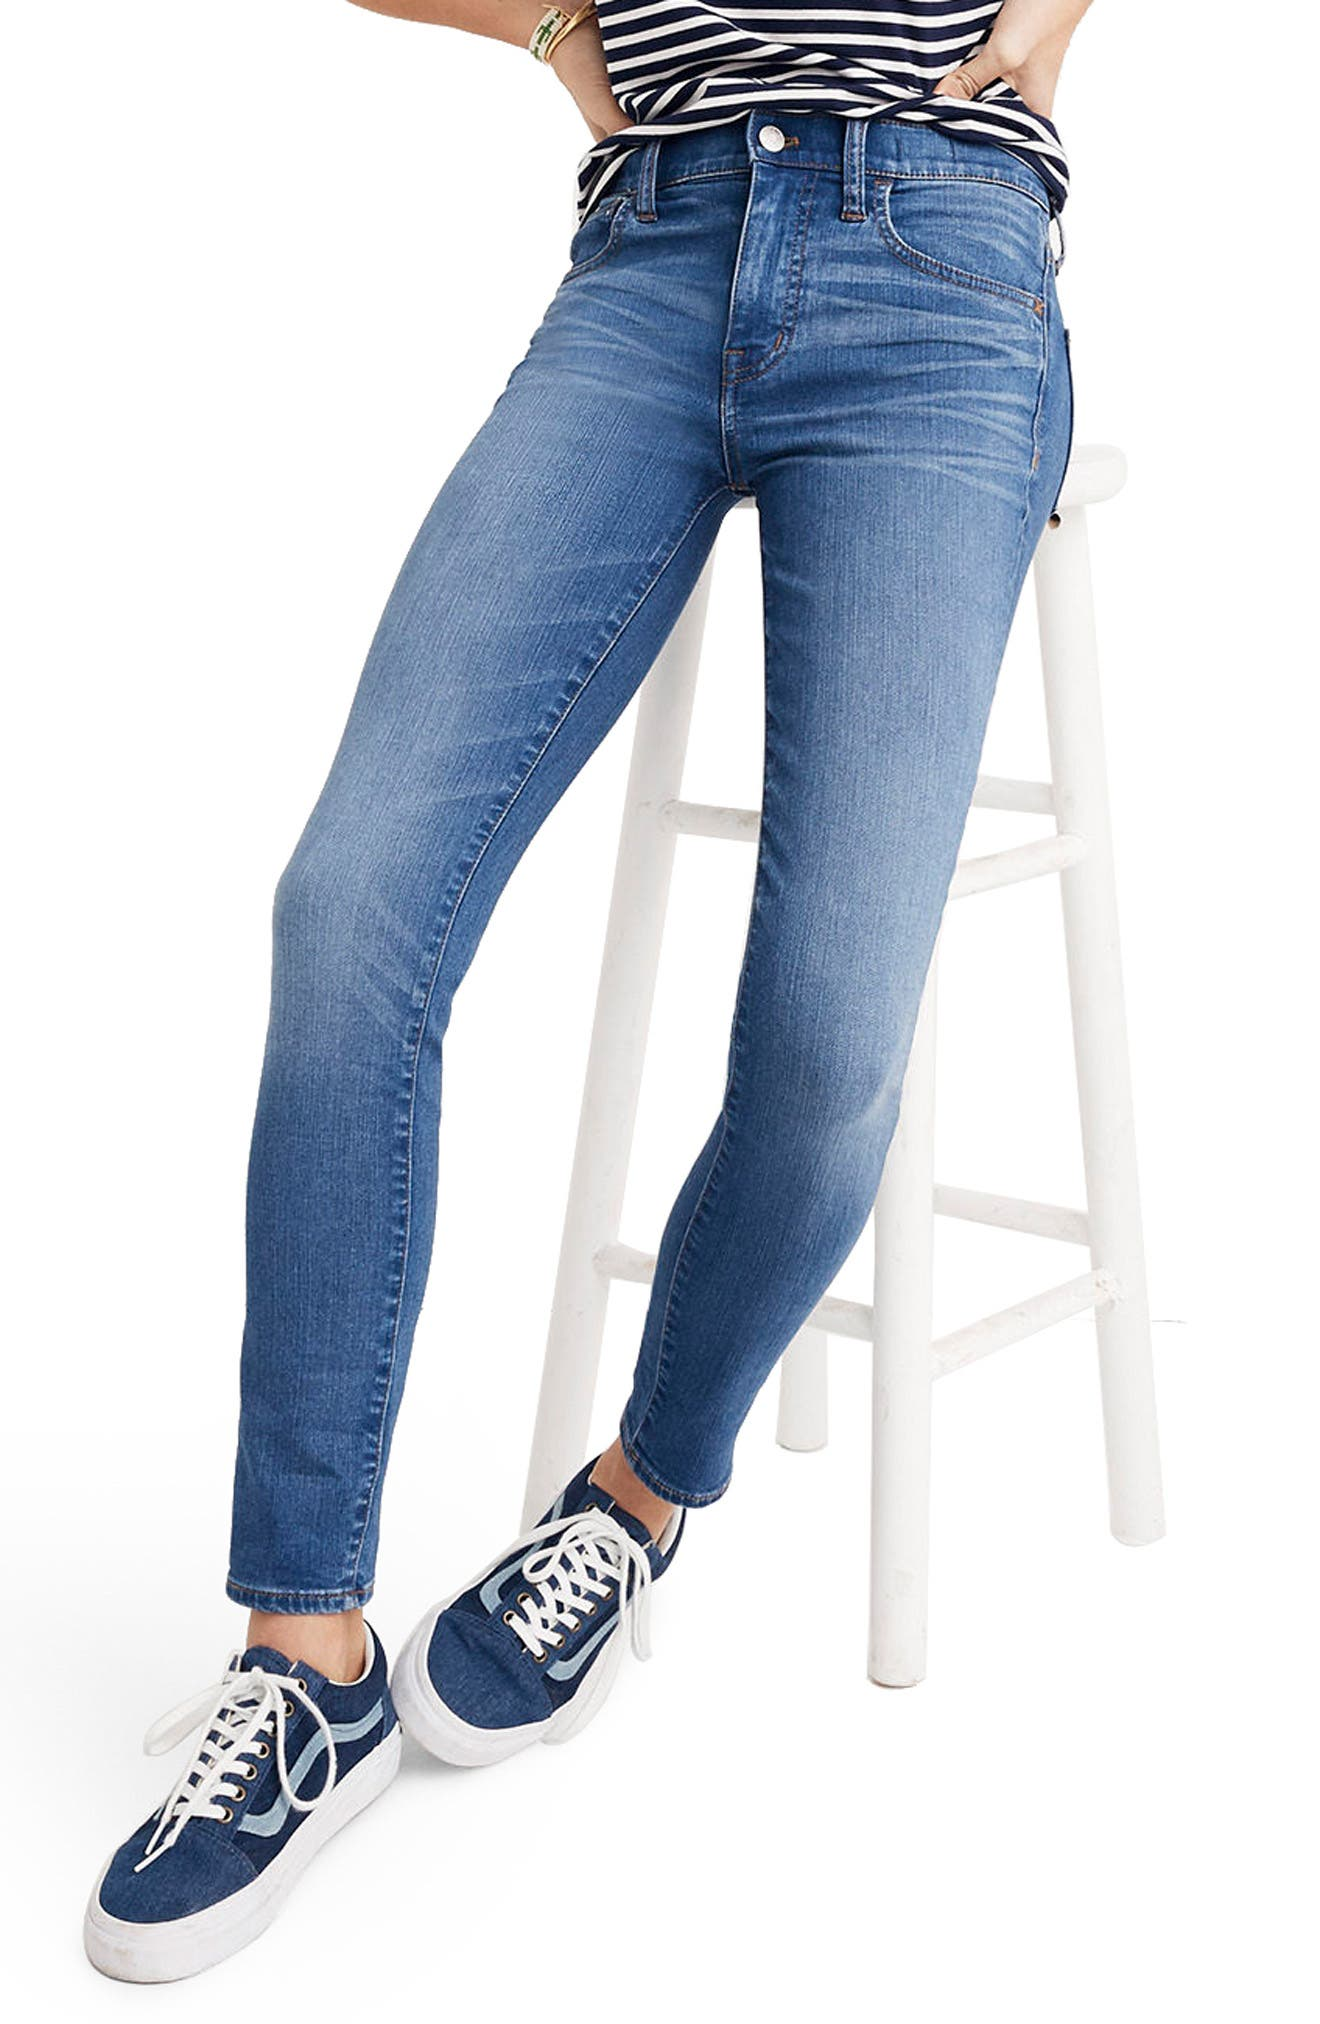 Roadtripper Crop Skinny Jeans,                         Main,                         color, DECLAN WASH